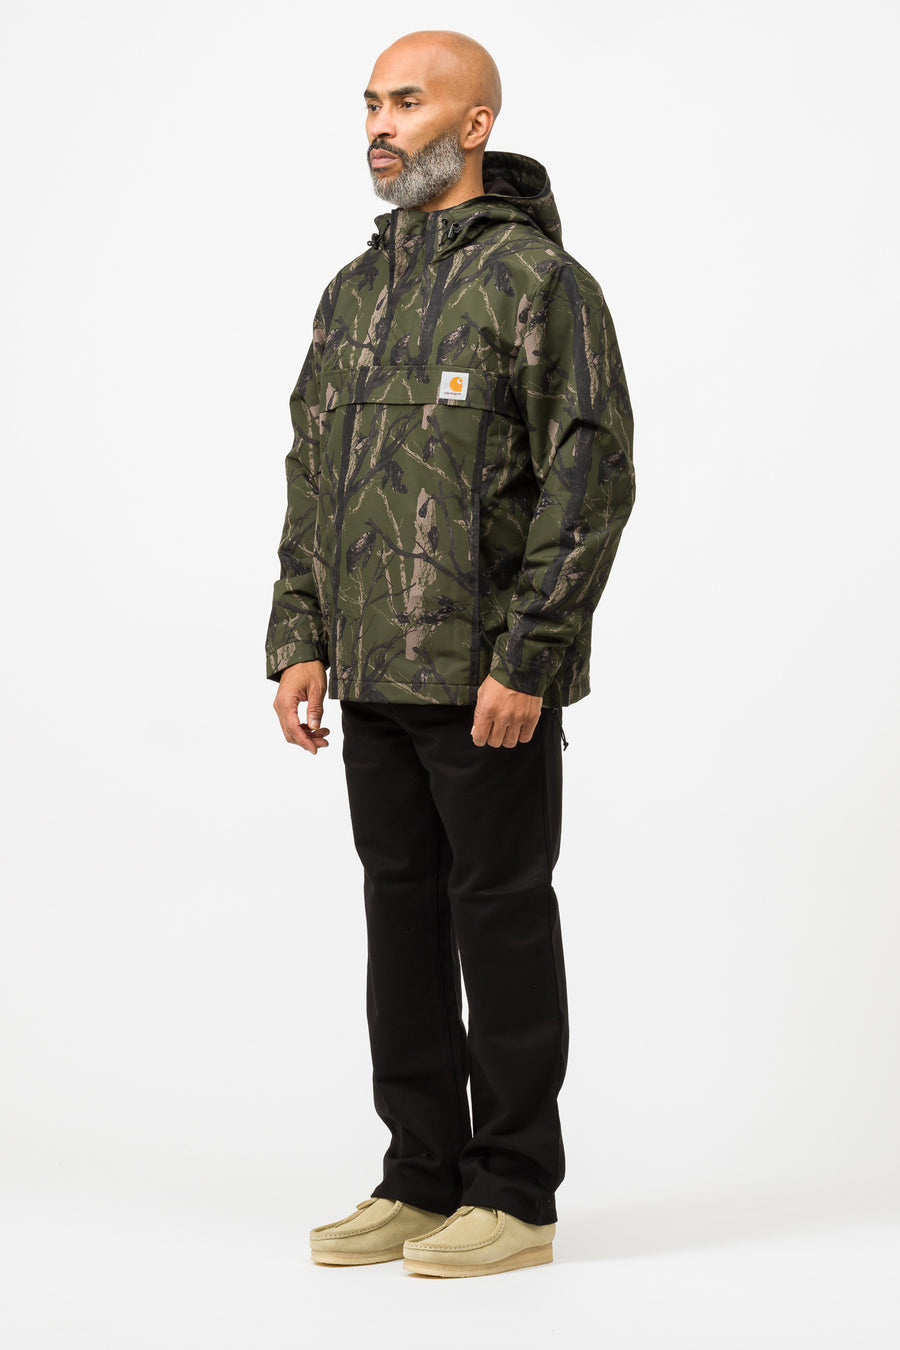 Carhartt WIP Nimbus Pullover Nylon Supplex in Camo Tree Green - Notre